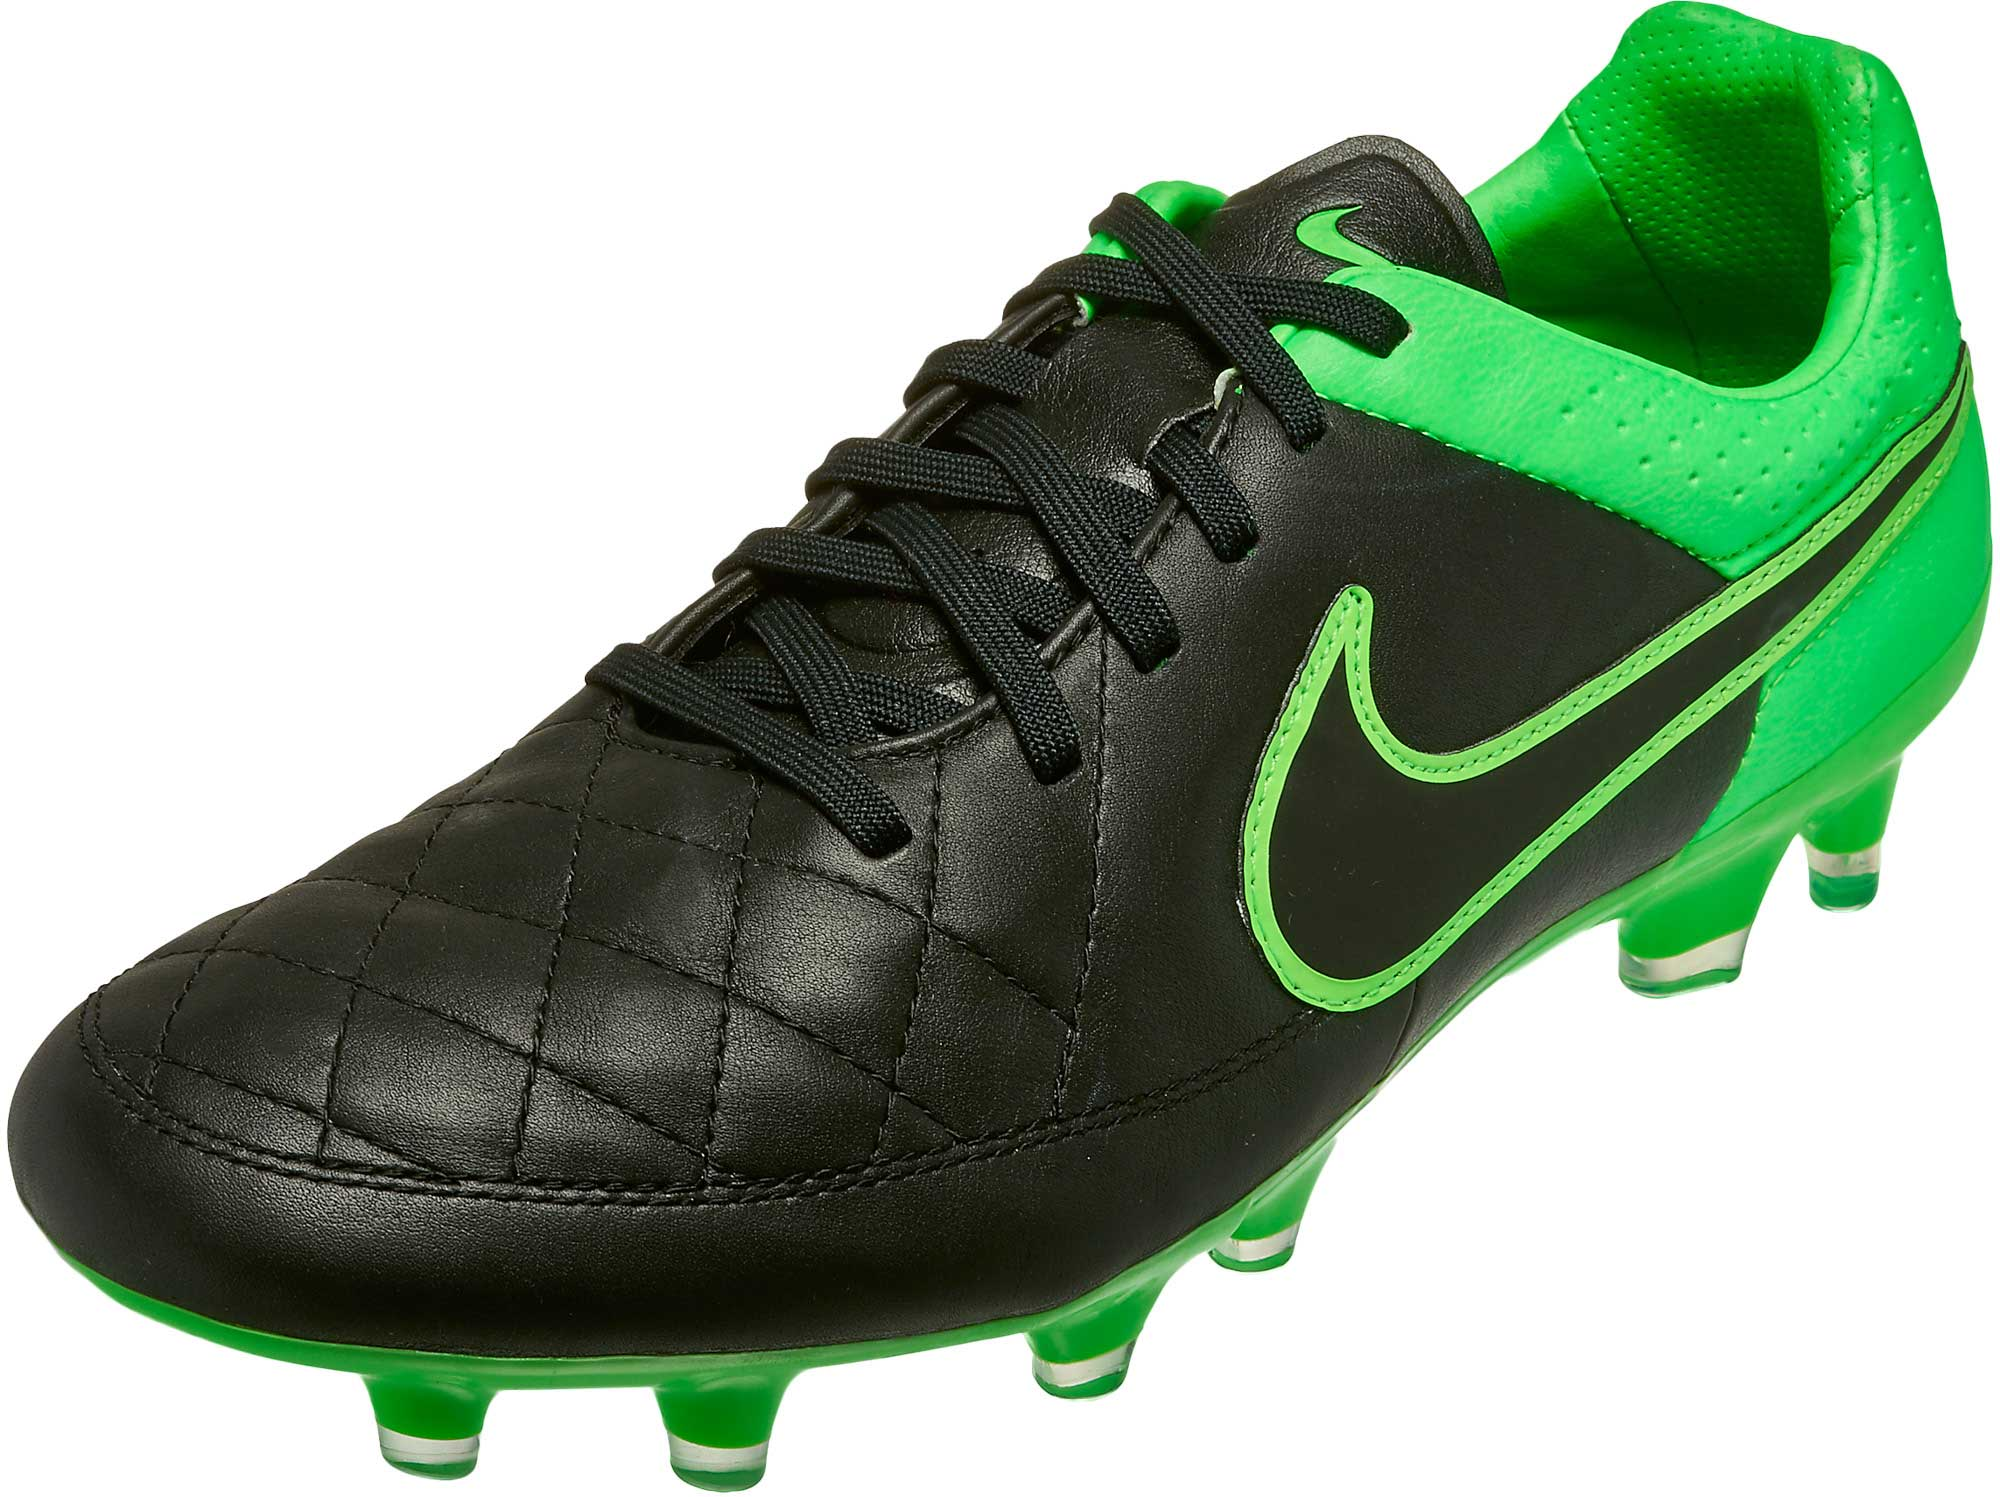 online store d83da 0fe94 Nike Tiempo Legend V FG Soccer Cleats - Black and Green